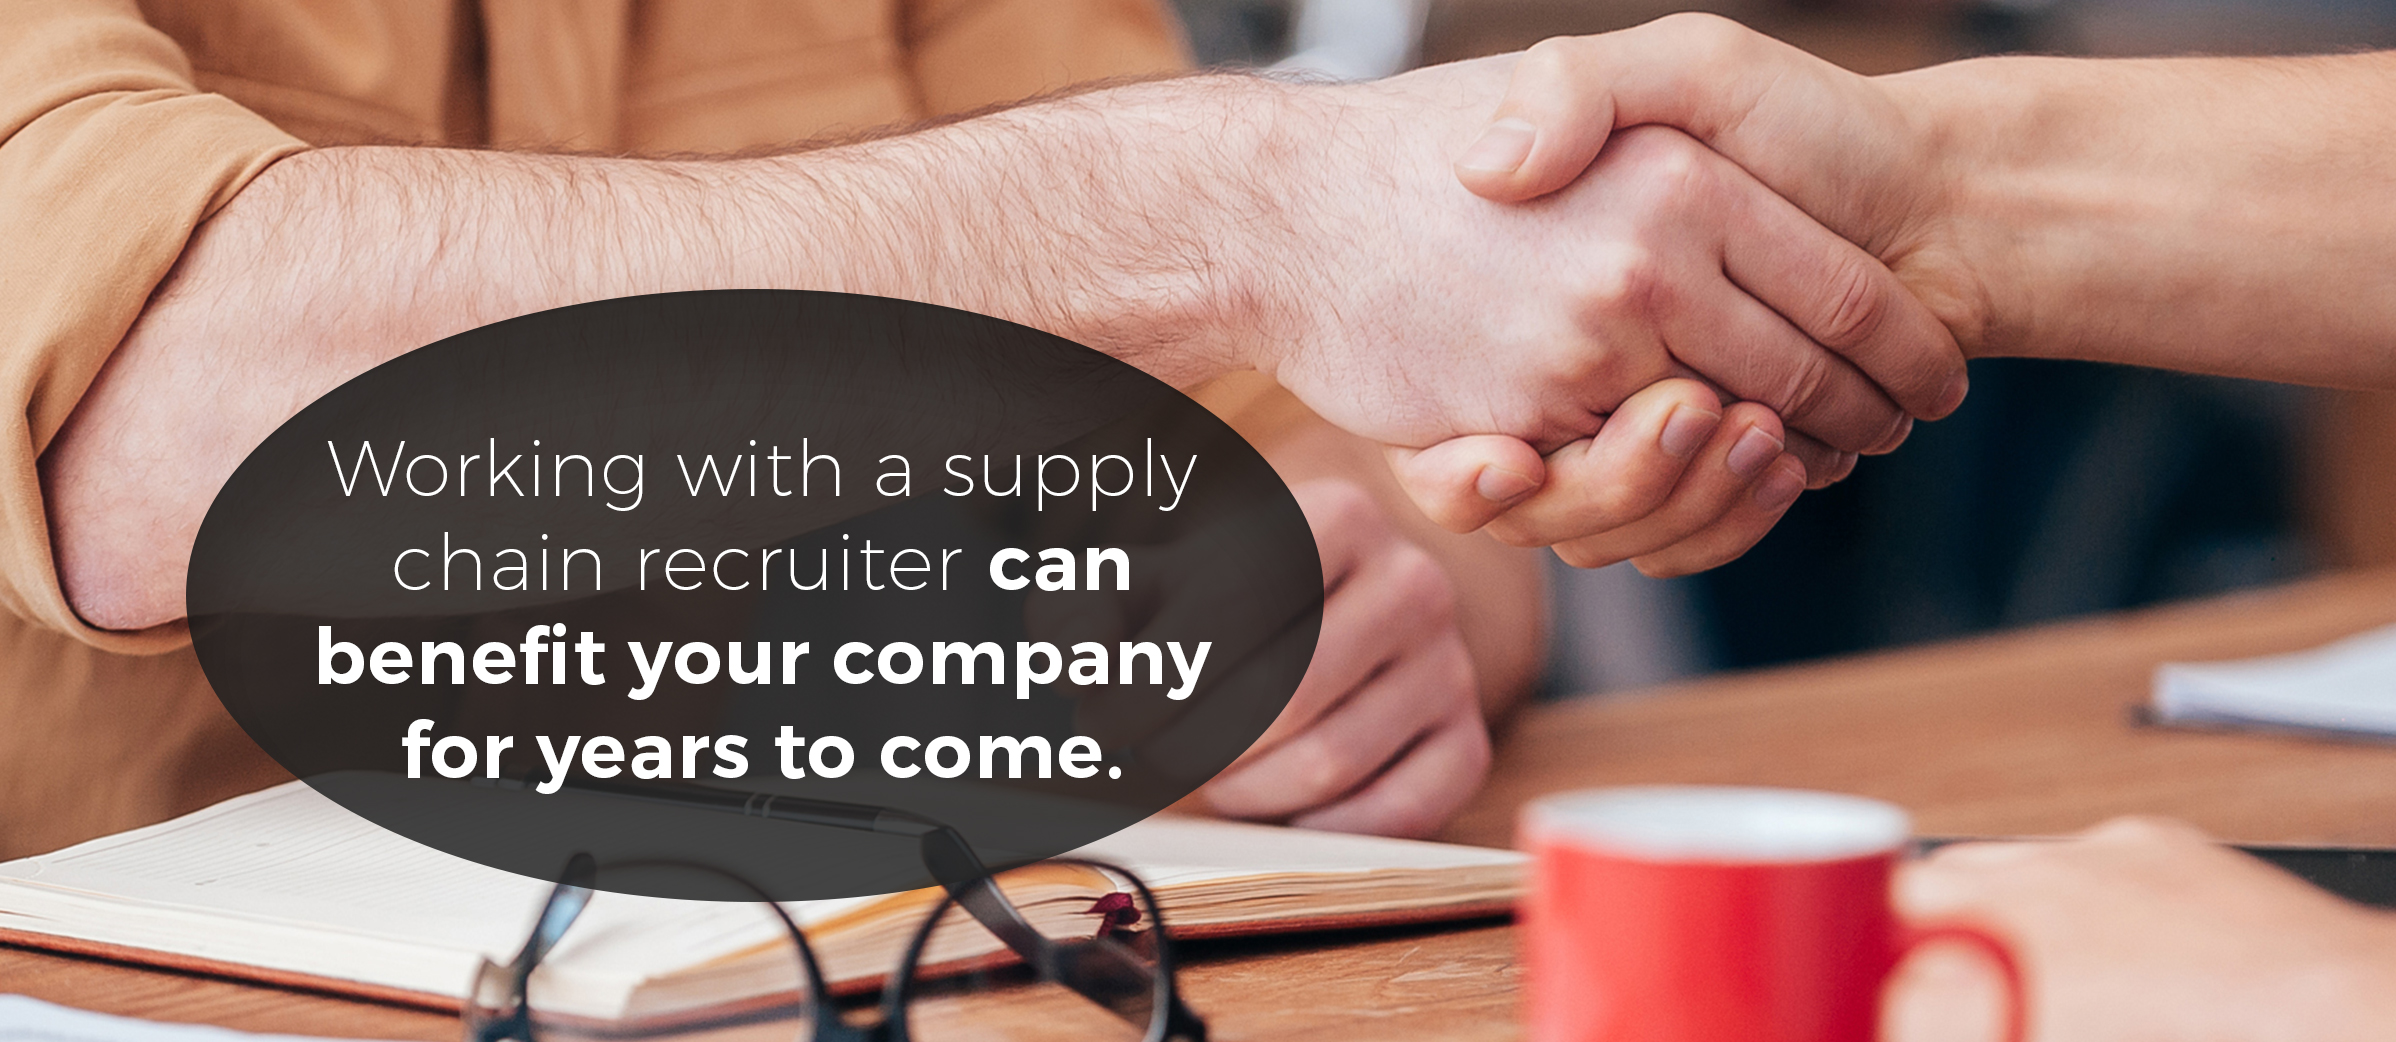 working with a supply chain recruiter can benefit your company for years to come